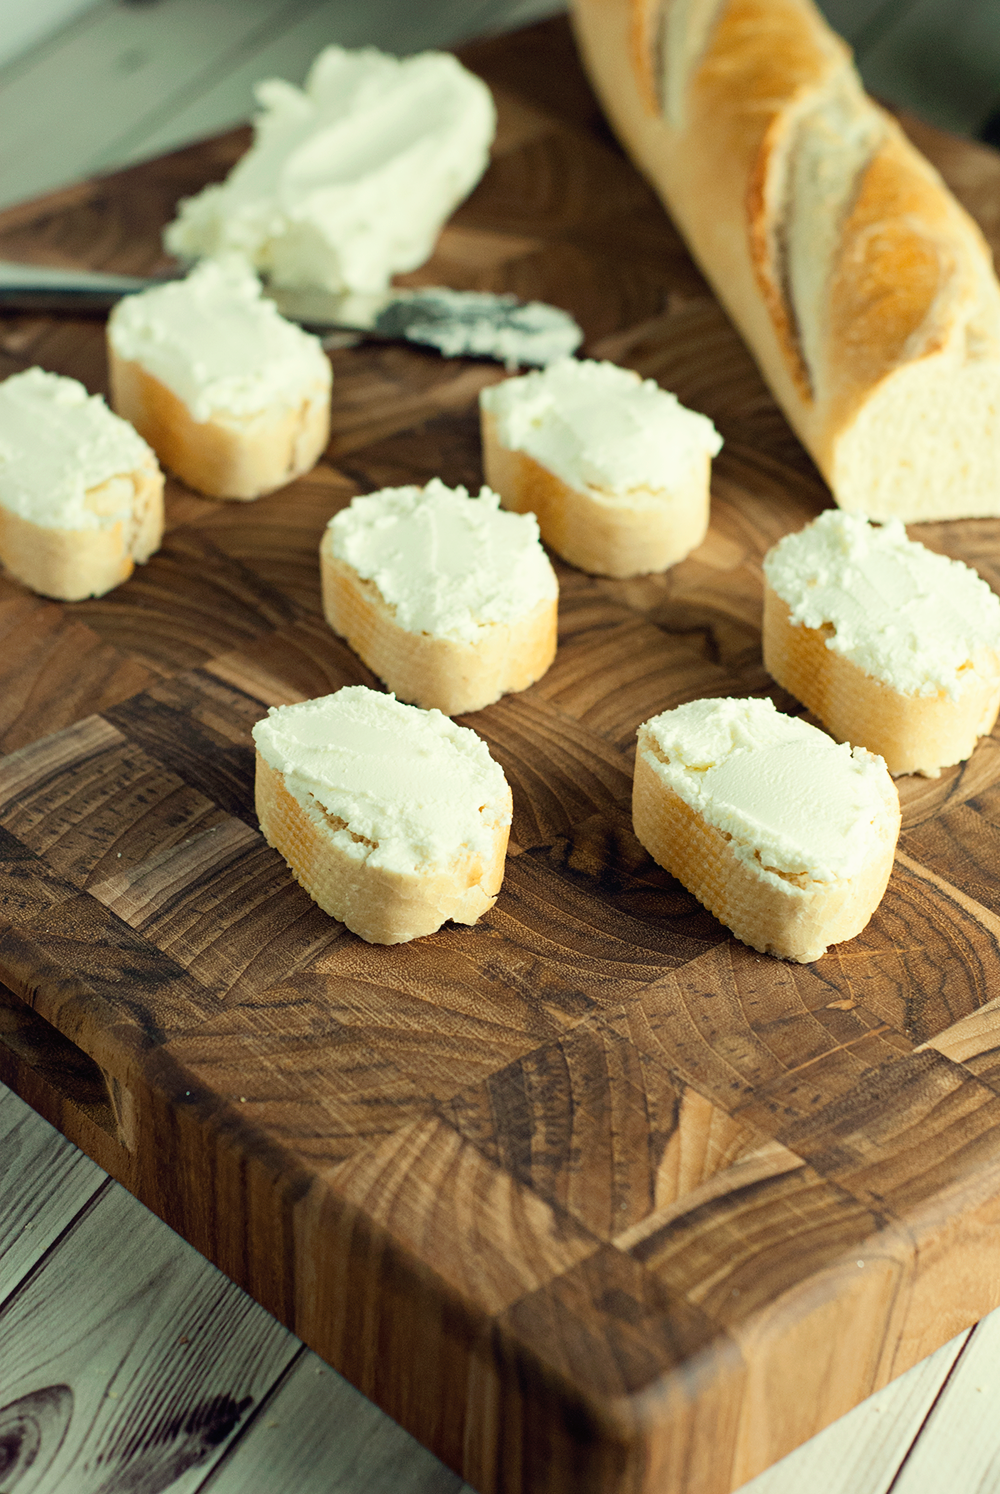 Make the perfect party appetizer with these goat cheese, prosciutto, and cranberry crostini!